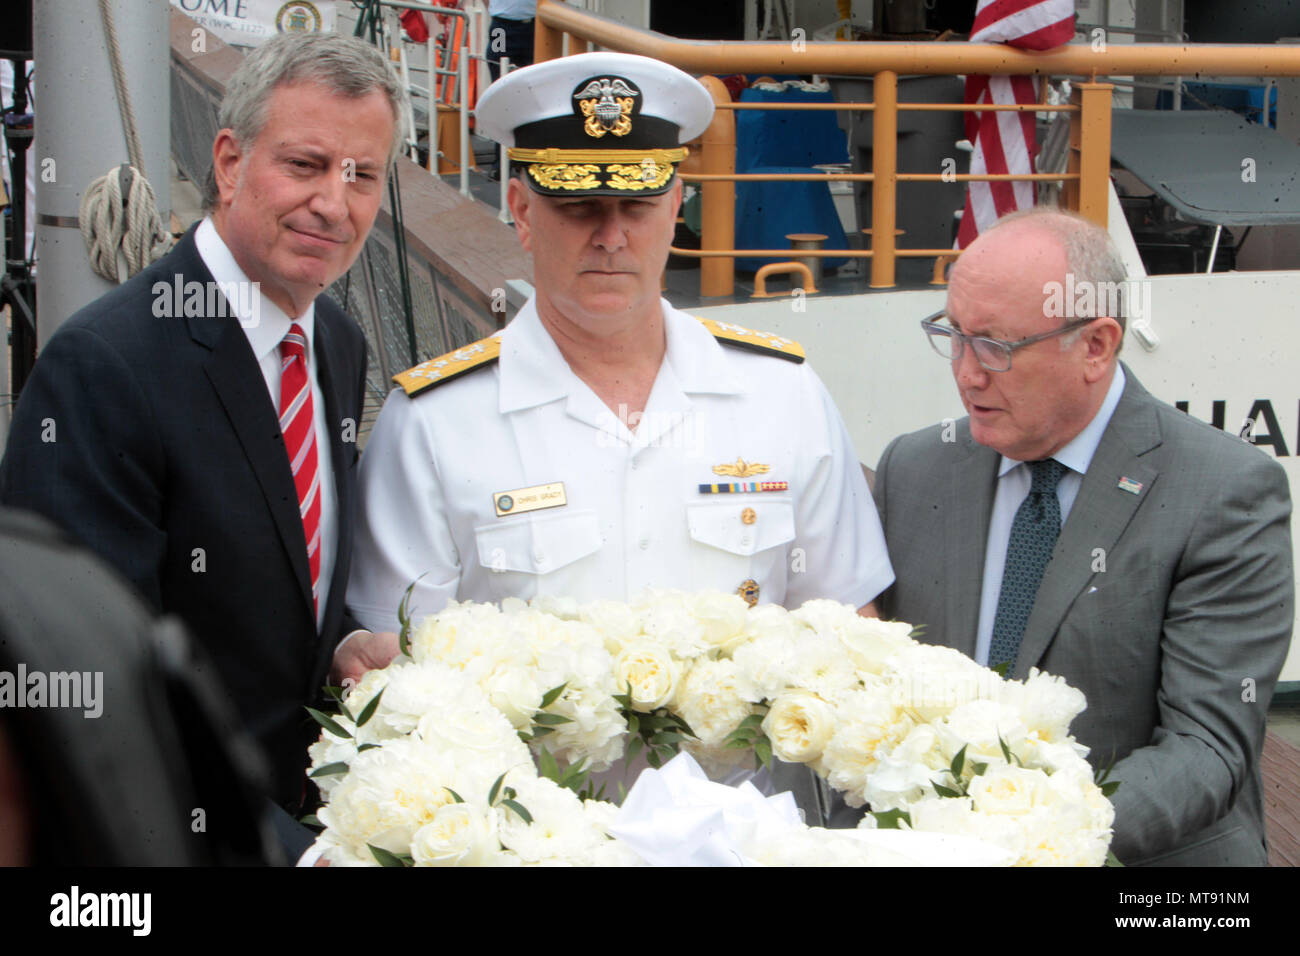 New York, NY, USA. 28th May, 2018. (L-R) New York City Mayor Bill De Blasio, Admiral Christopher Grady, United States Navy and Bruce Mosier, Co Chair, Intrepid Sear, Air & Space Museum attend the 2018 Memorial Day Ceremony held aboard the U.S.S Intrepid Sea, Air, Space Museum Complex on May 28, 2018 in New York City. Credit: Mpi43/Media Punch/Alamy Live News - Stock Image